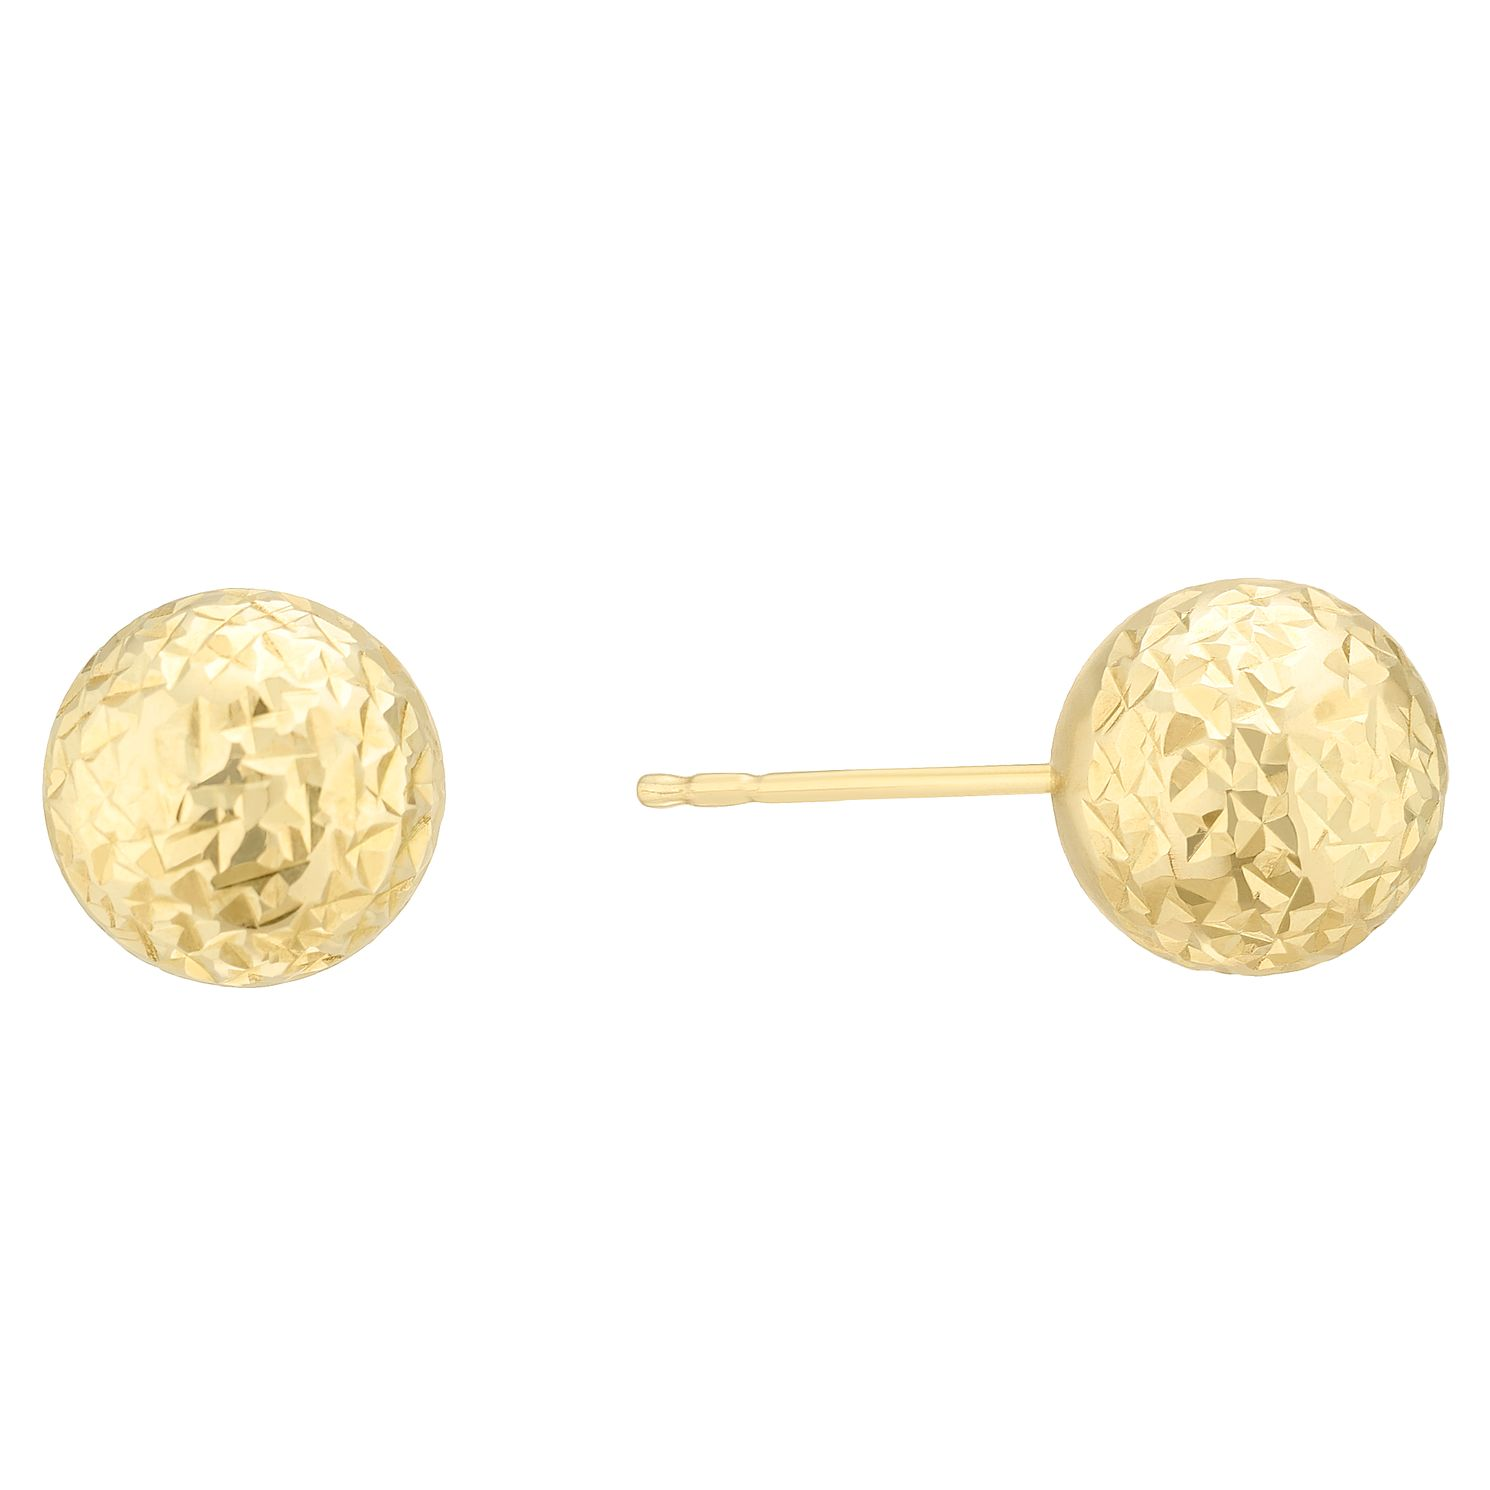 9ct Yellow Gold Diamond Cut 8mm Ball Stud Earrings - Product number 4025695